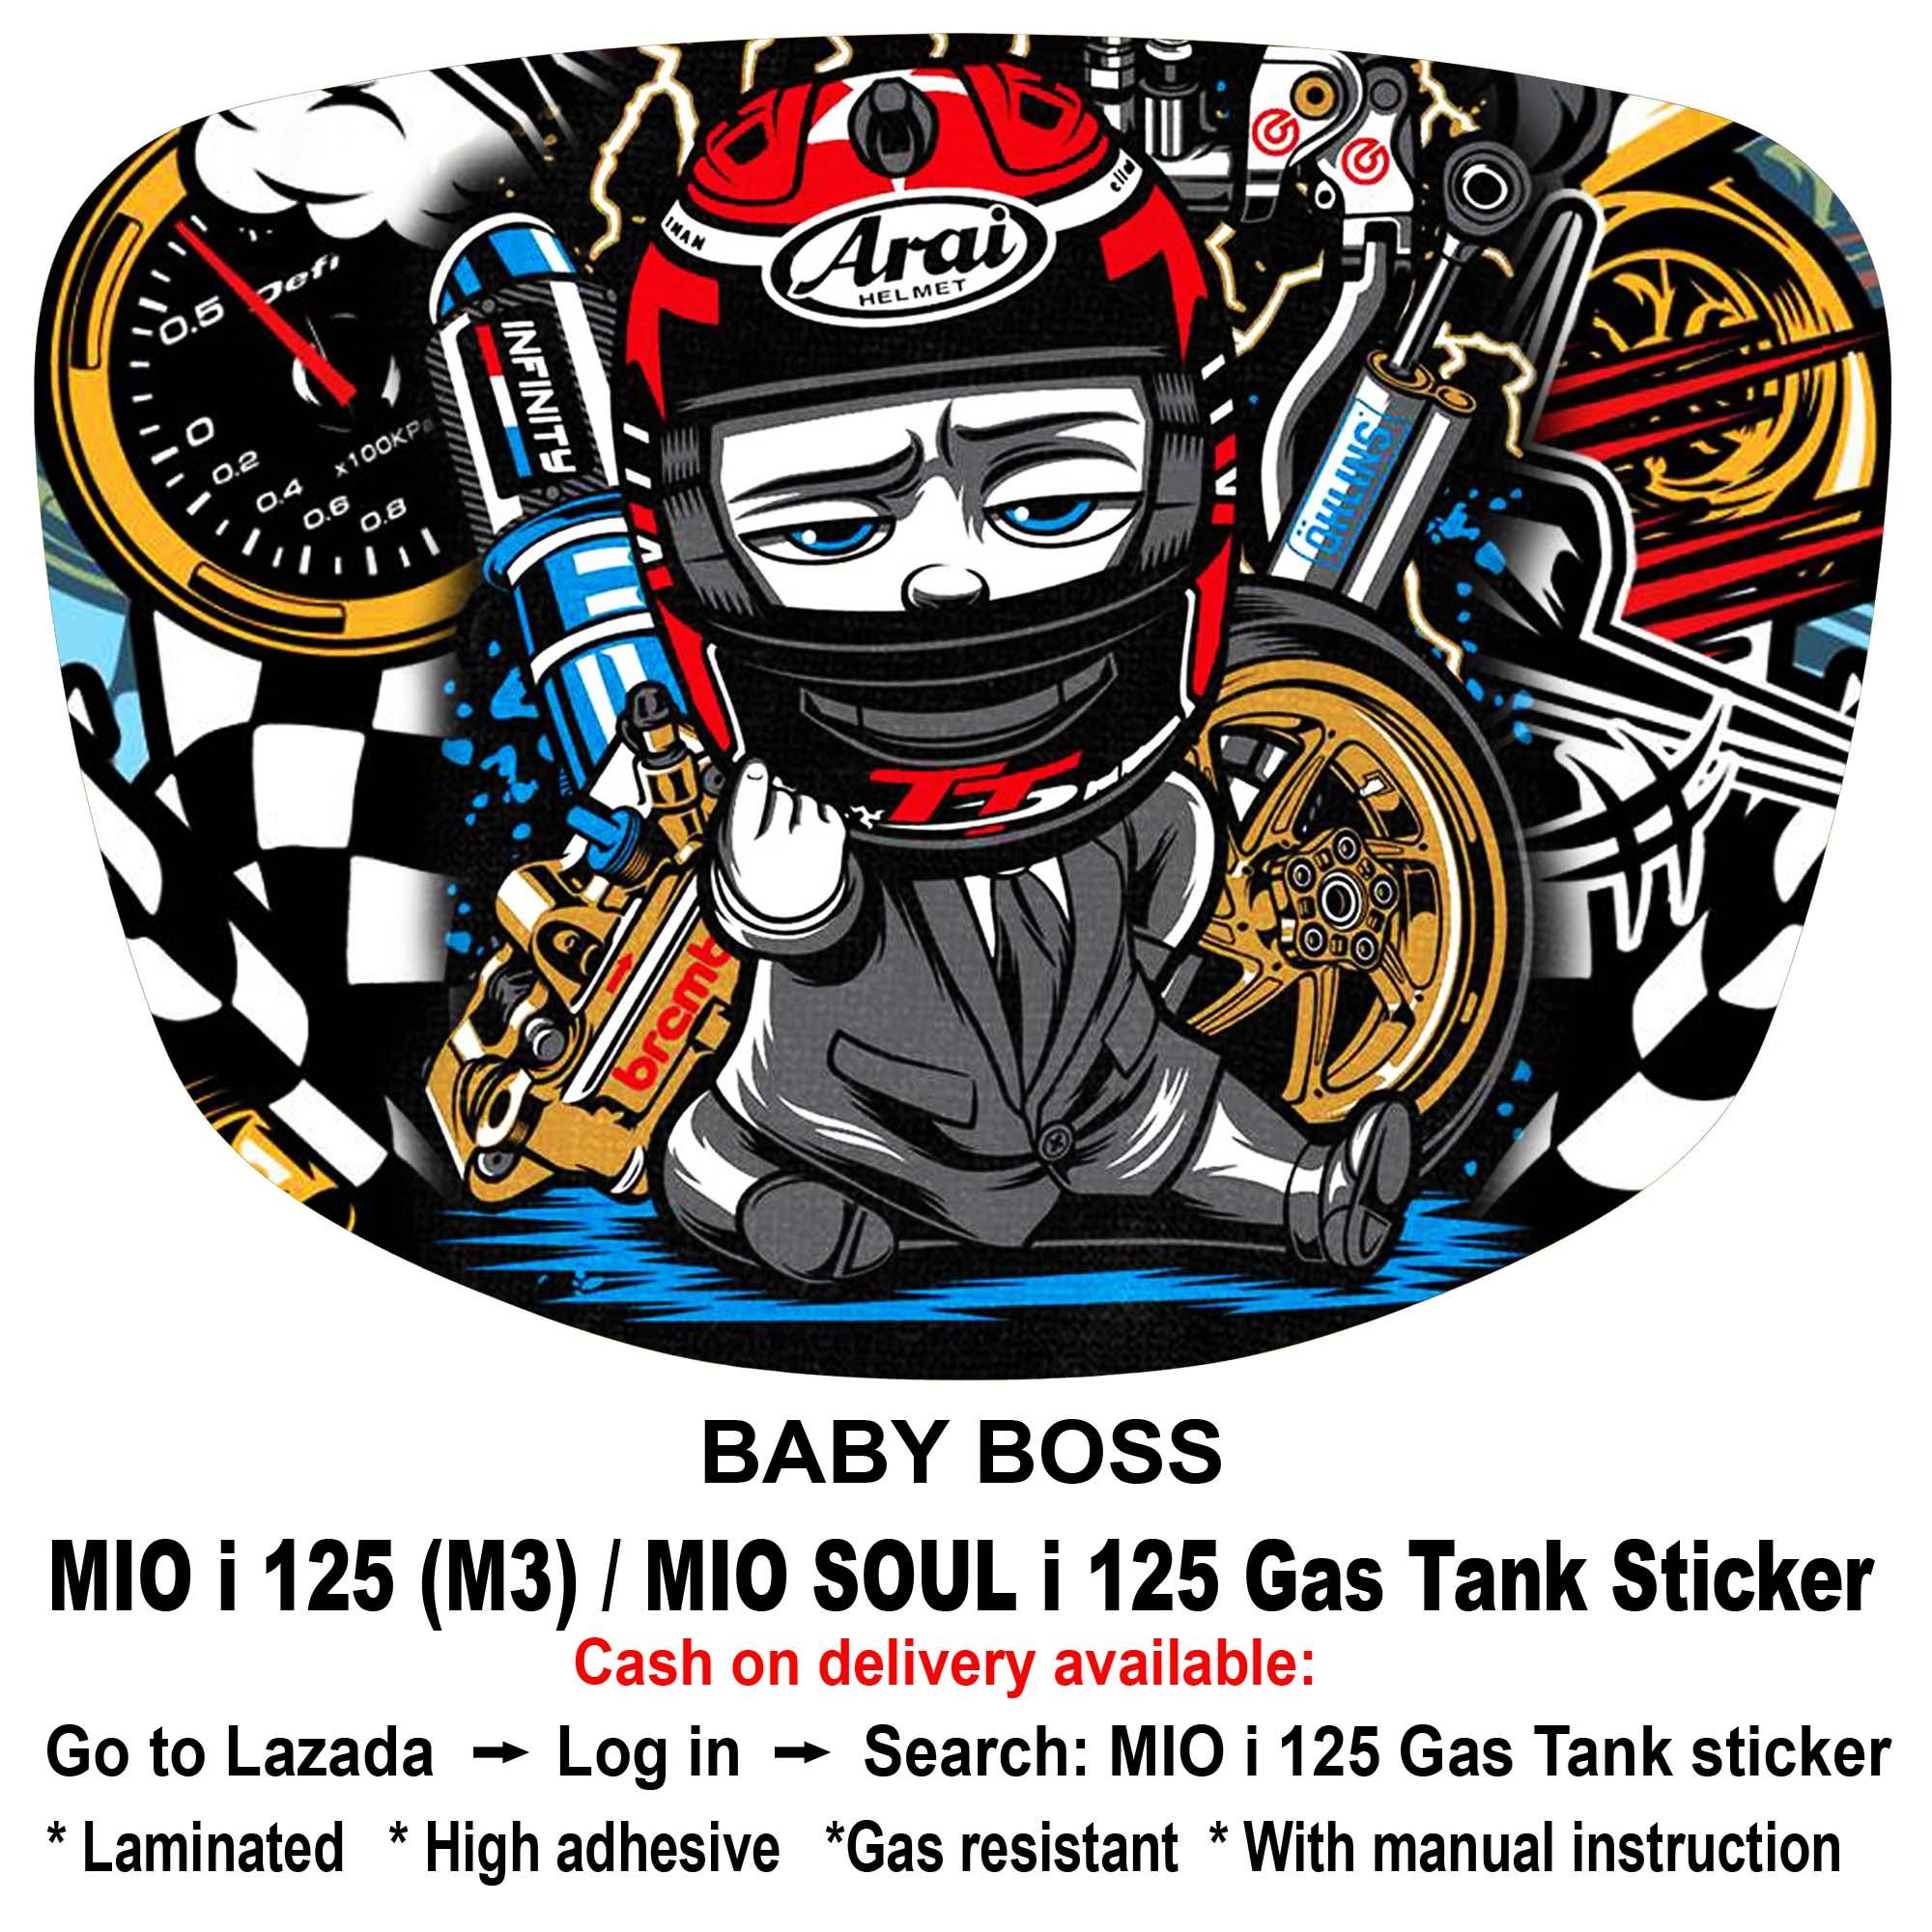 Mio i 125 msi 125 gas tank sticker baby boss